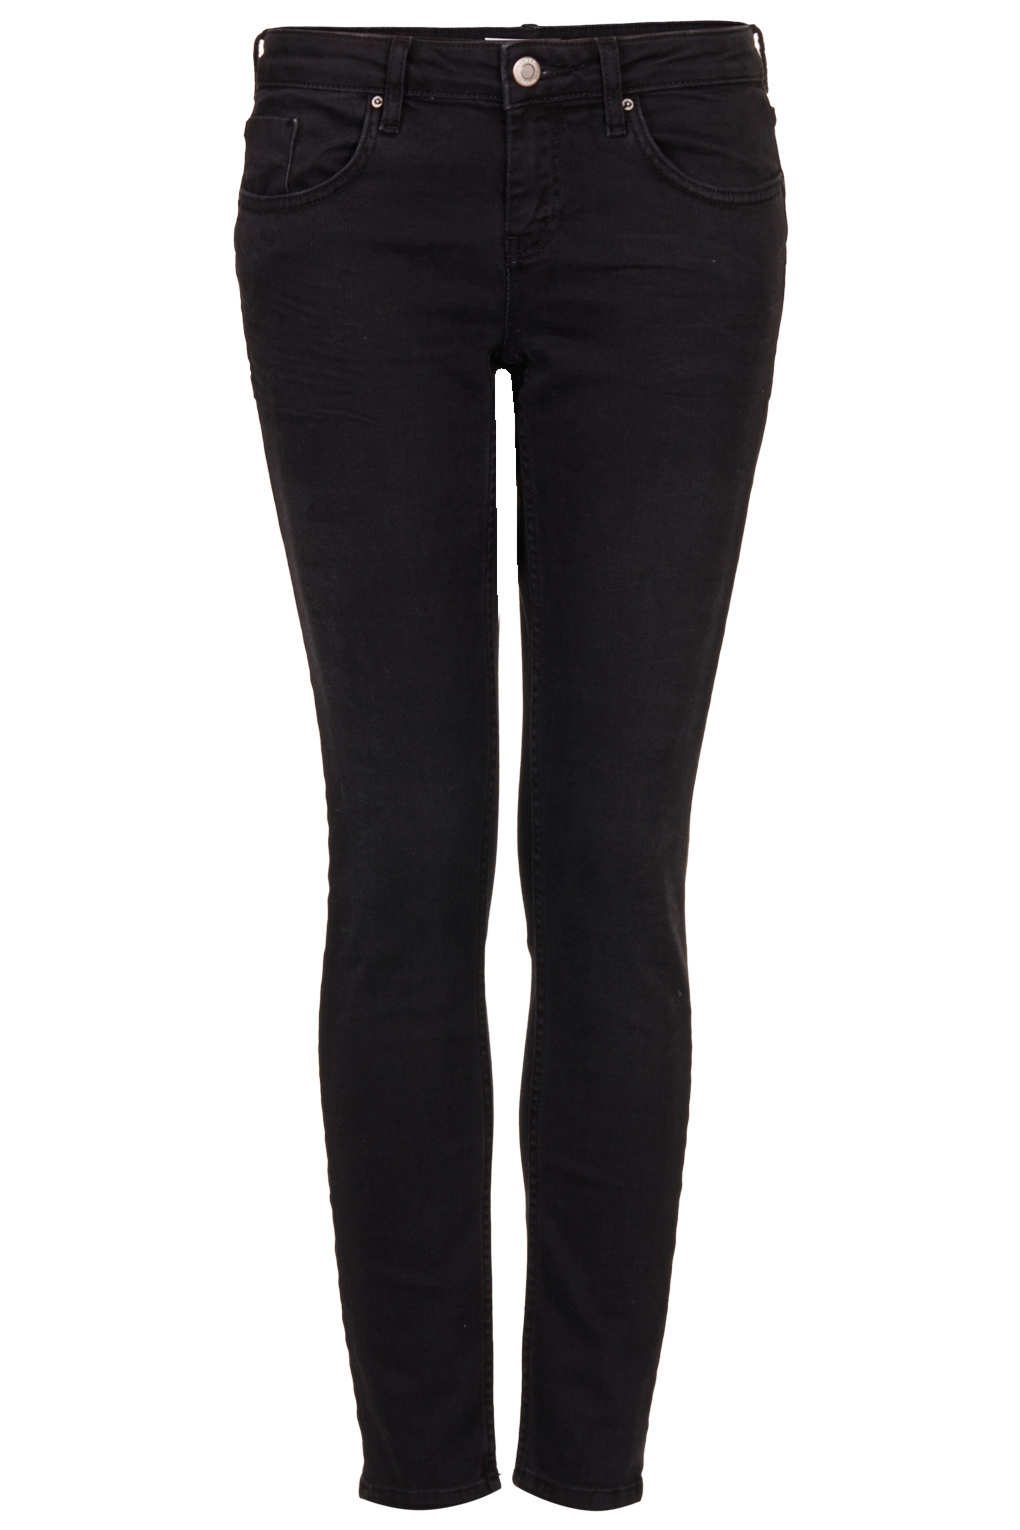 Free shipping and returns on Women's Black Jeans & Denim at it24-ieop.gq